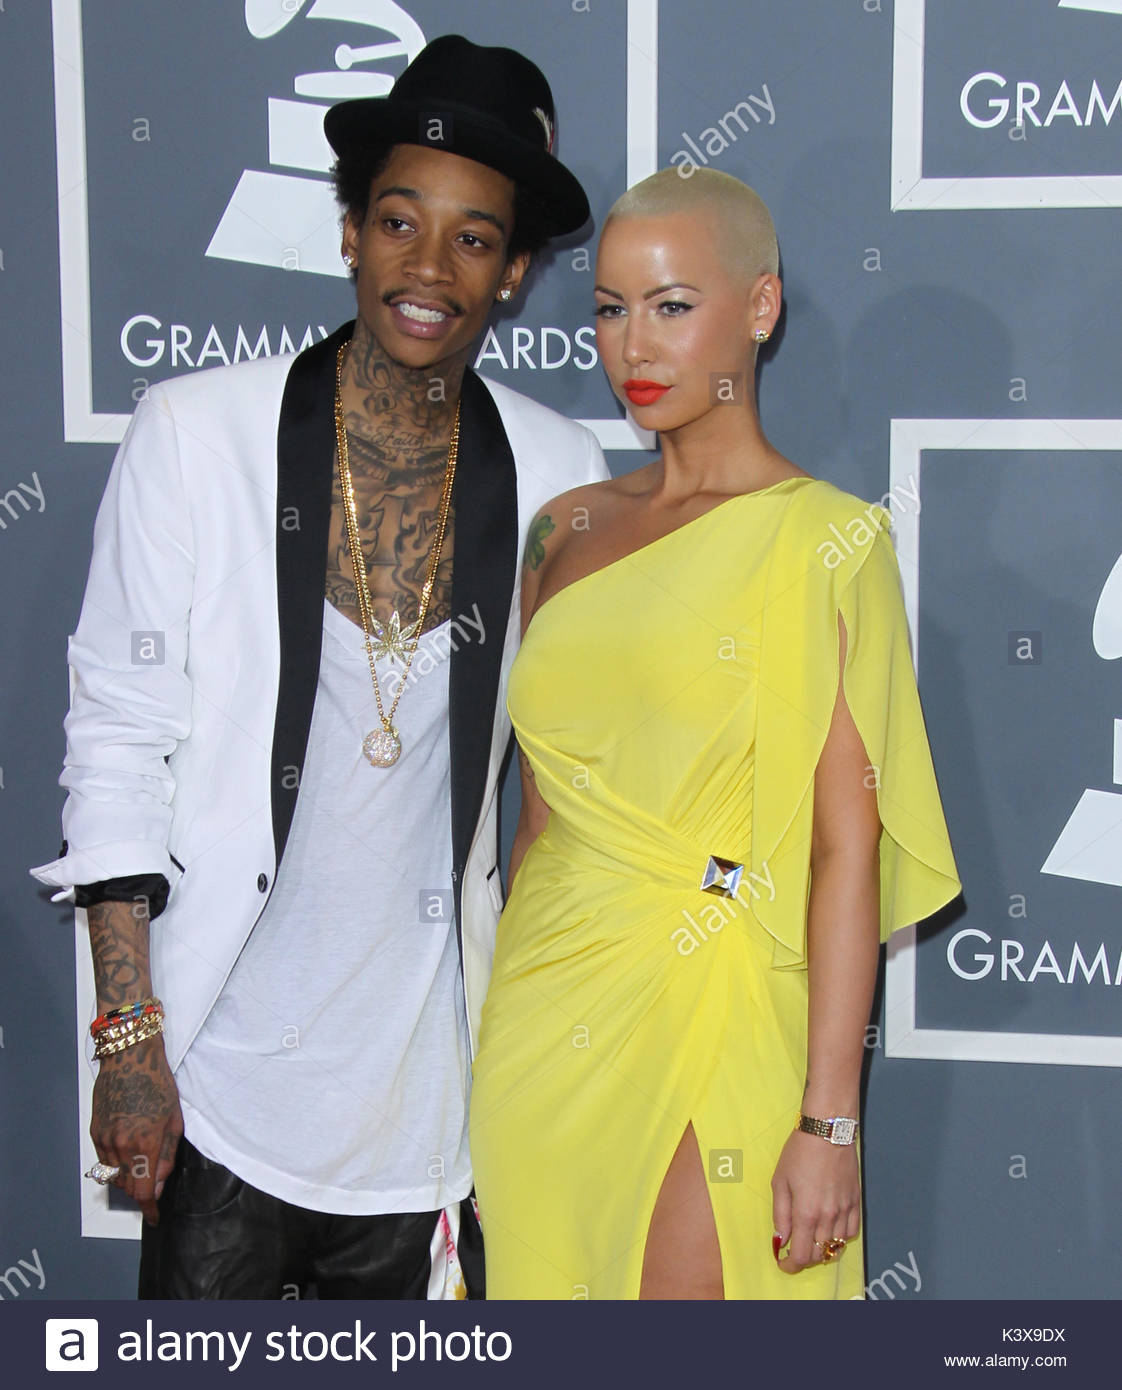 Pictures of wiz khalifa pictures of celebrities - Wiz Khalifa And Amber Rose Celebrities Arrive At The 54th Annual Grammy Awards At The